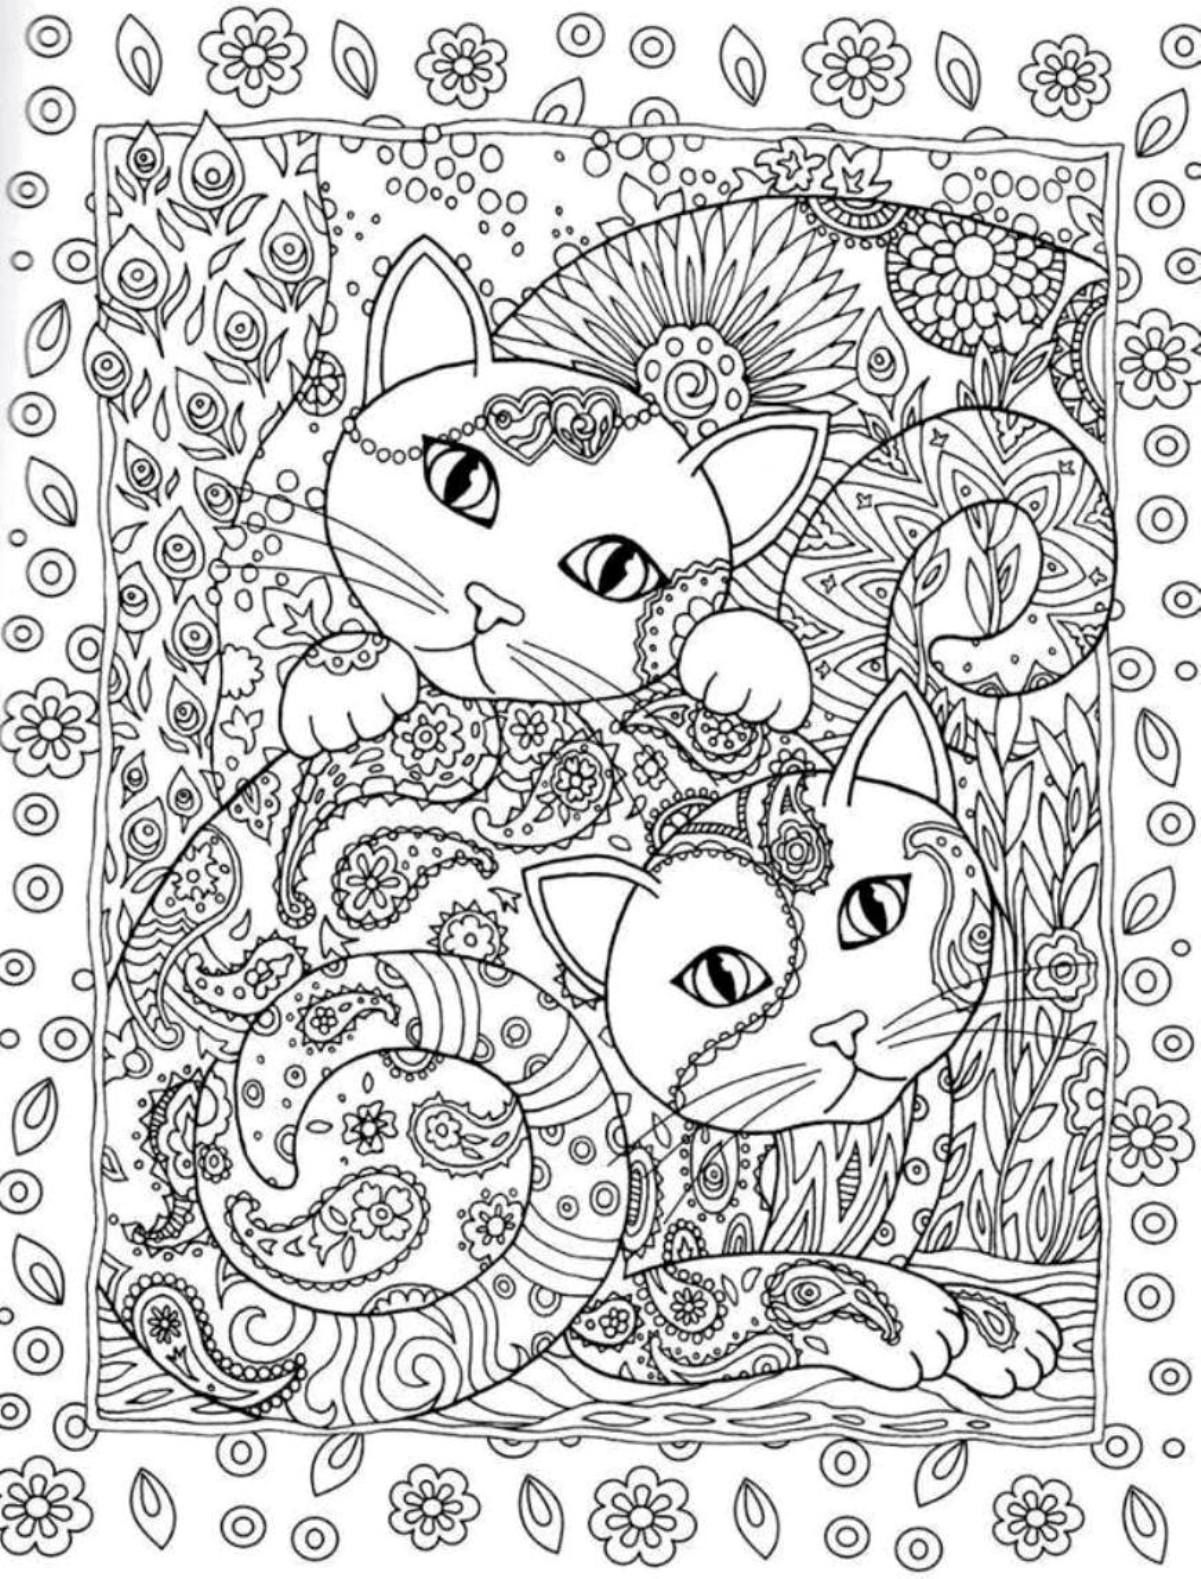 Creative cats coloring book by marjorie sarnat dover Dover coloring books for adults